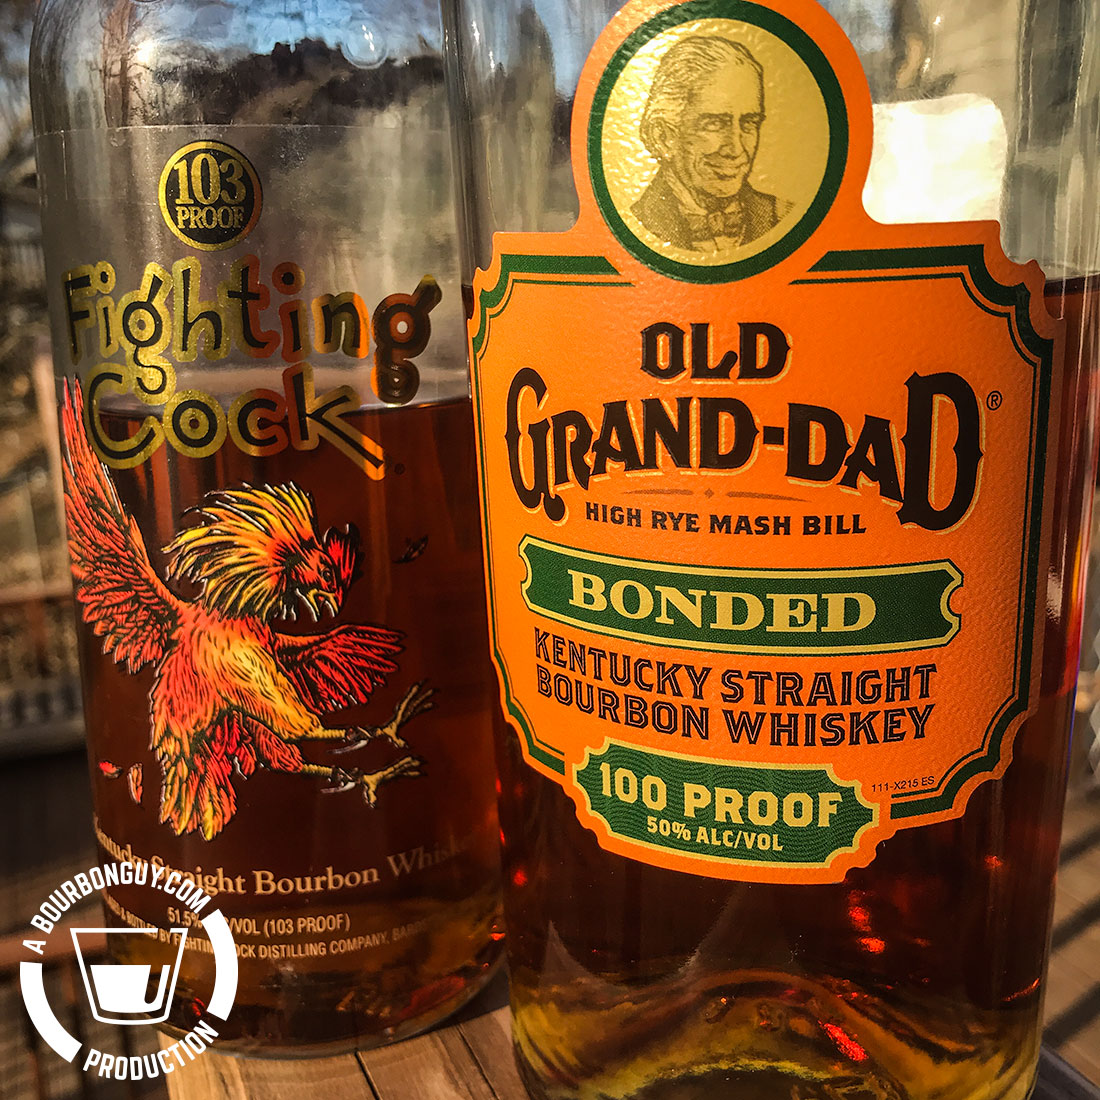 IMAGE: the front labels of Old Grand-Dad Bonded and Fighting Cock Bourbons